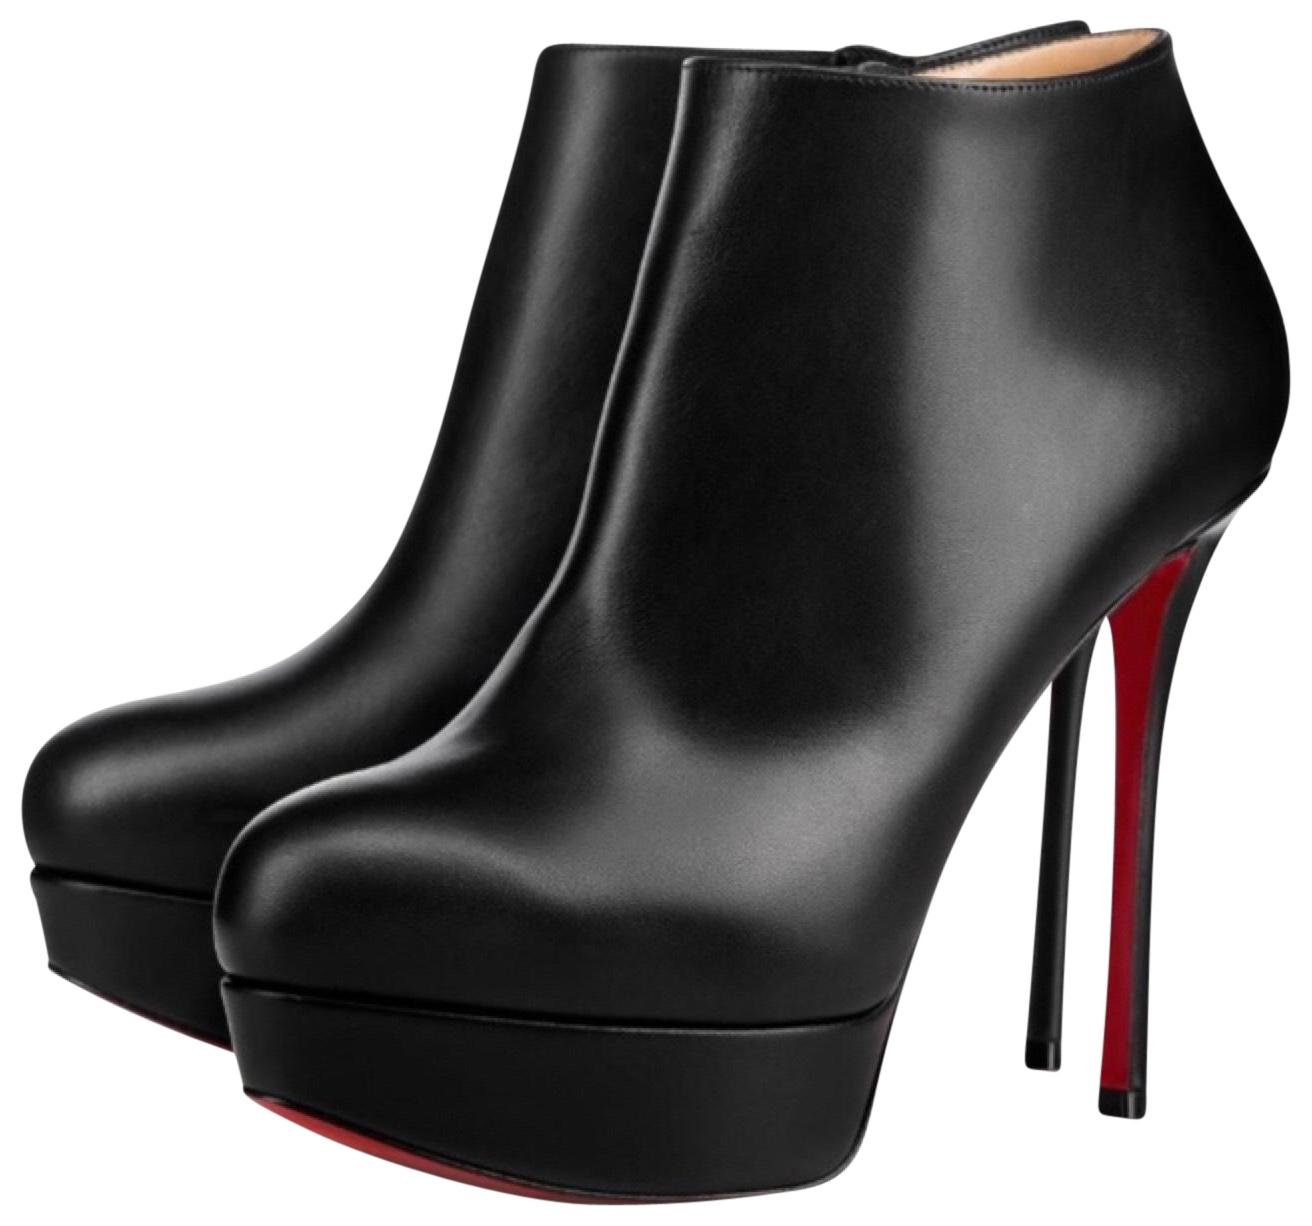 Christian Louboutin Black Dirdibootie 130 Boots/Booties Size EU 38 (Approx. US 8) Regular (M, B)